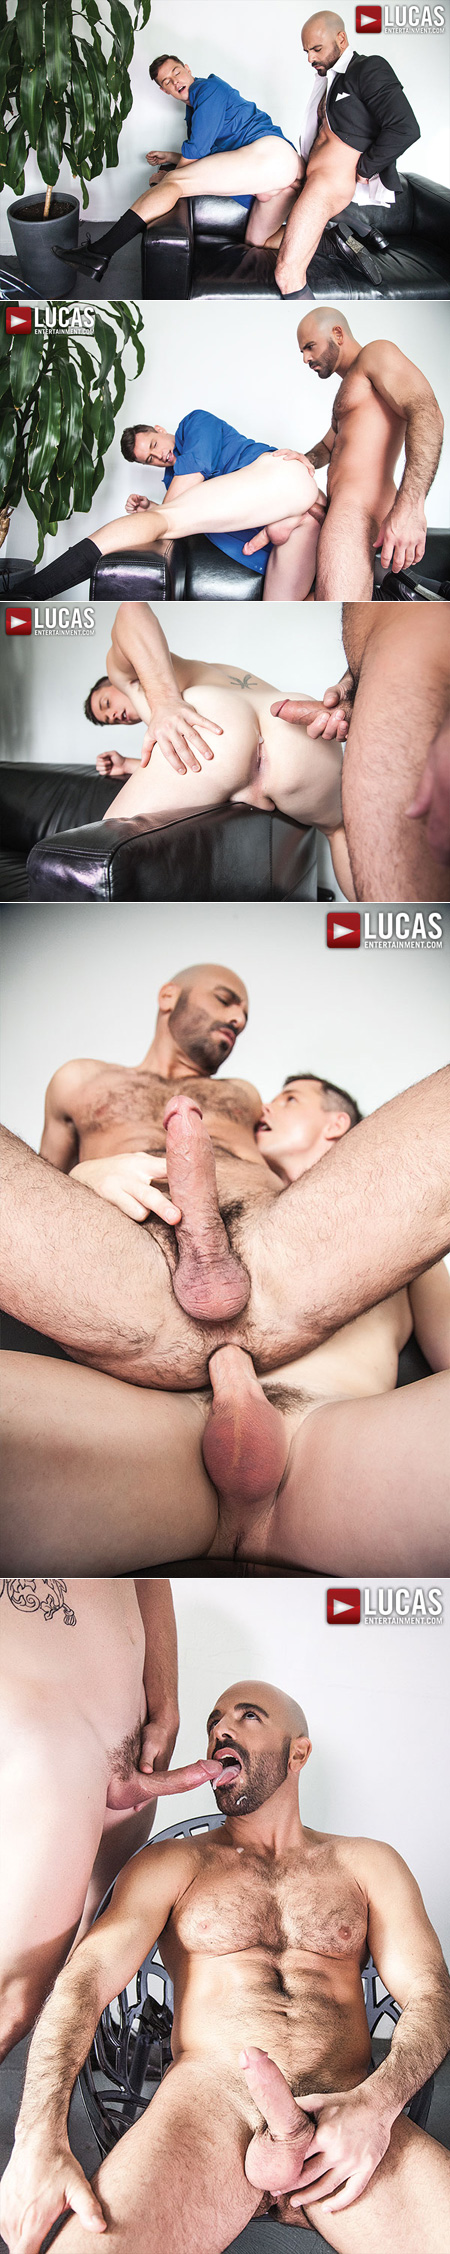 Two male office workers fucking bareback and cumming on each other.